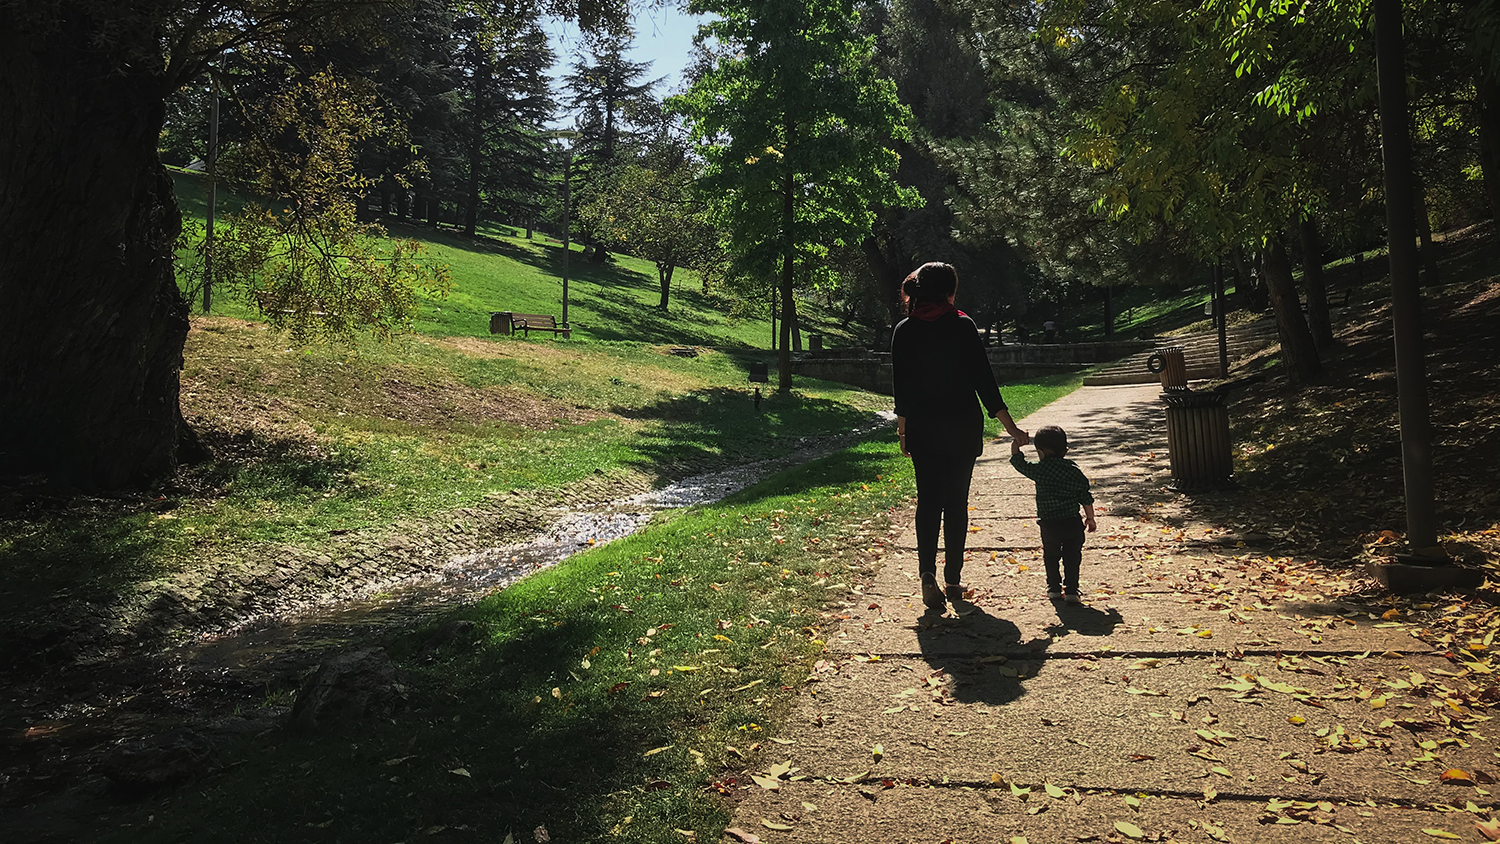 Woman and child walking in a park.